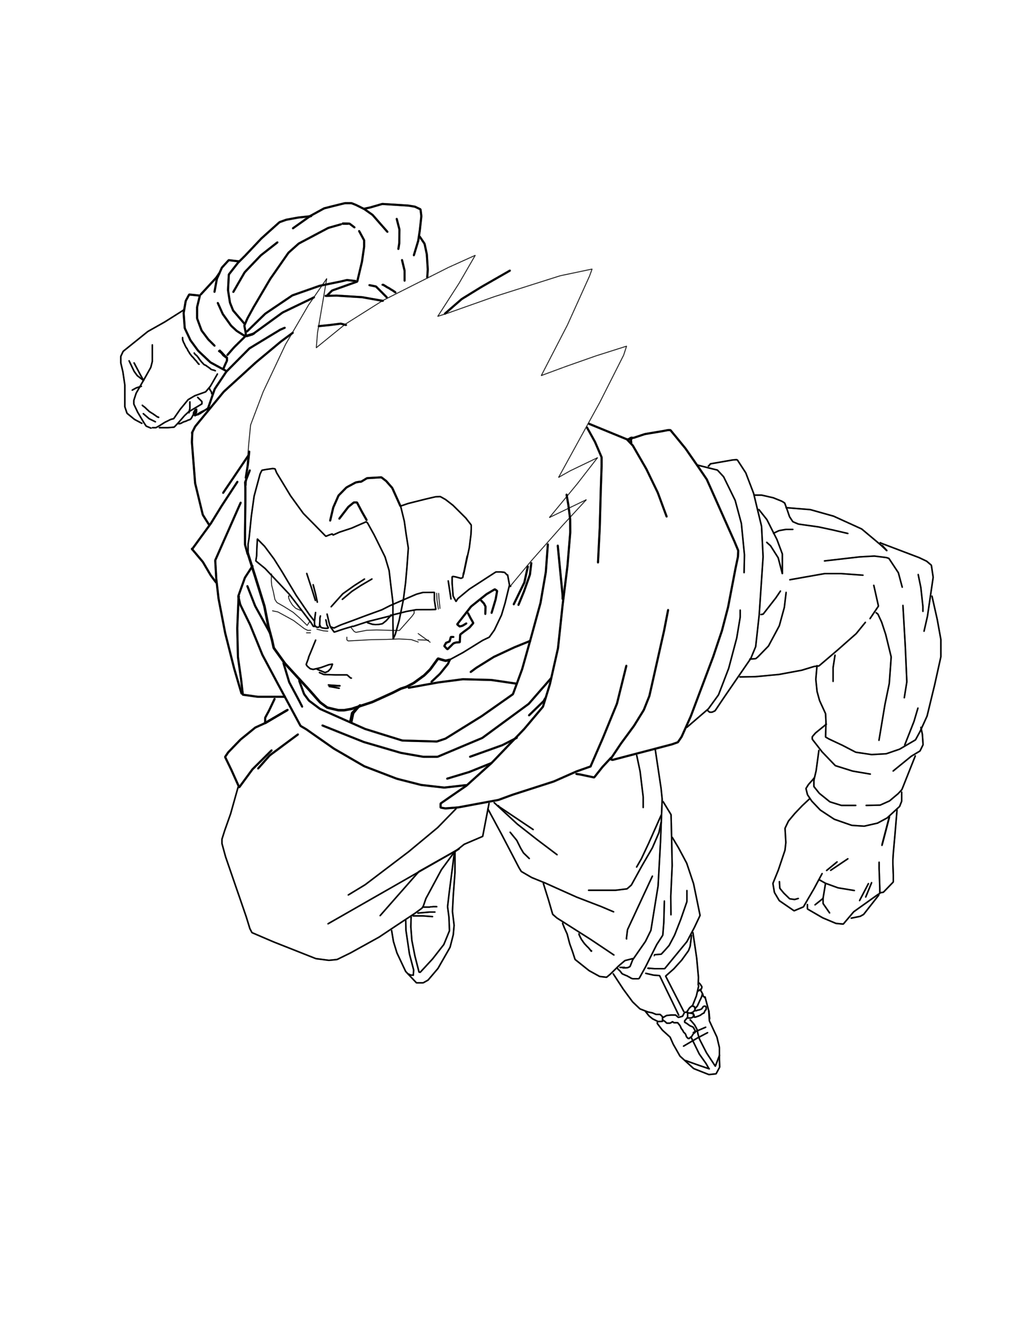 Line Art Render : Gohan render line art by brusselthesaiyan on deviantart